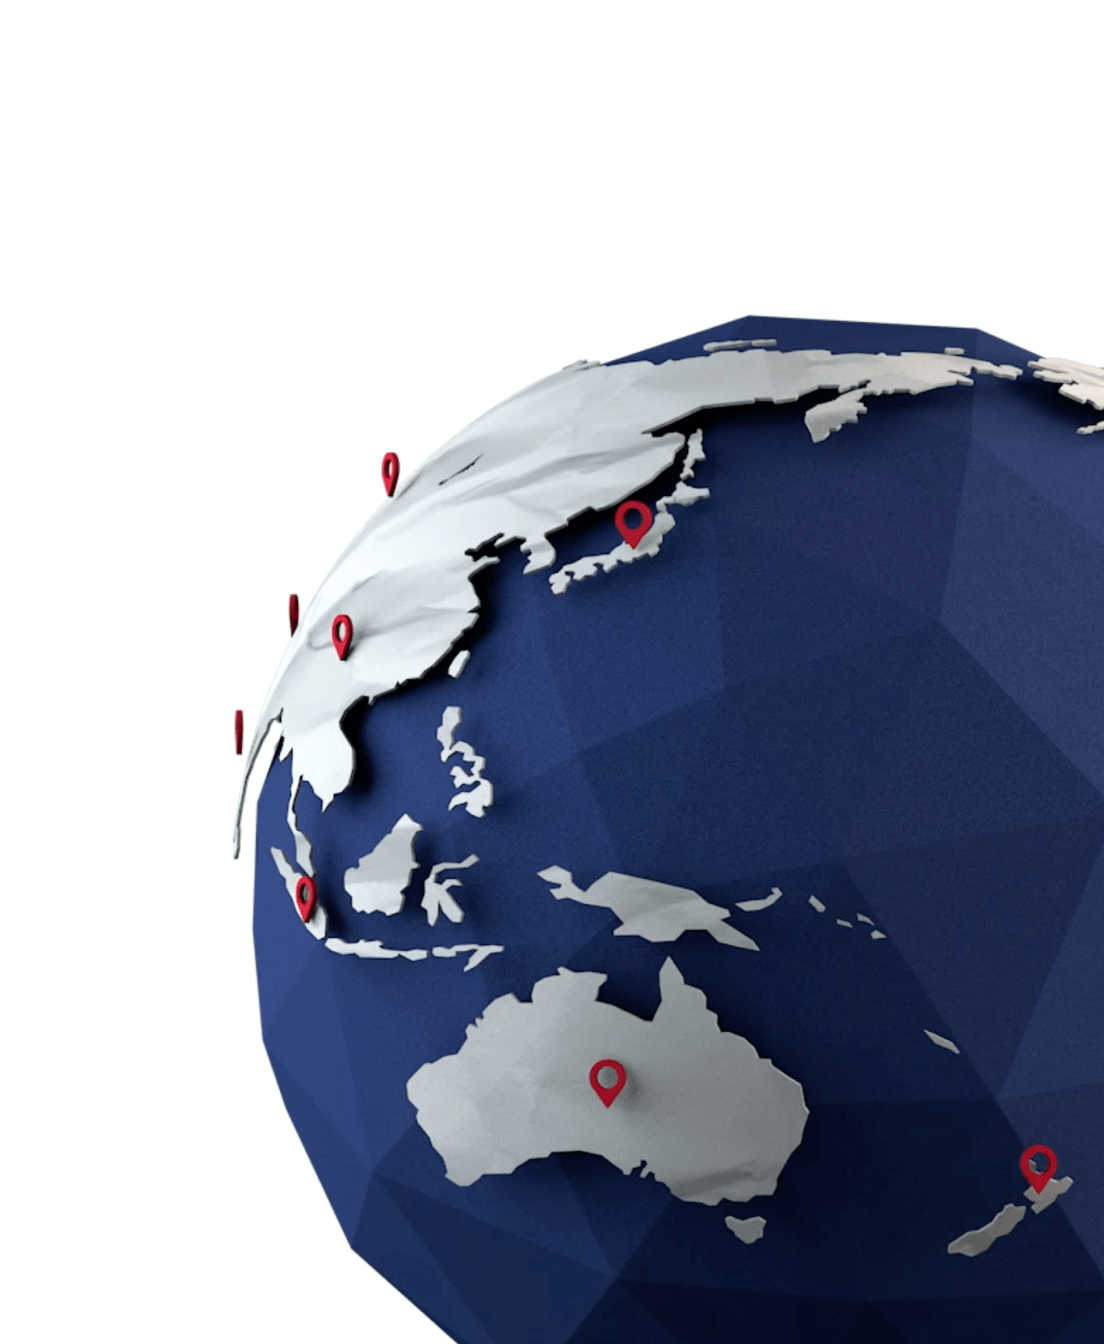 A render of the 3D globe created for the website